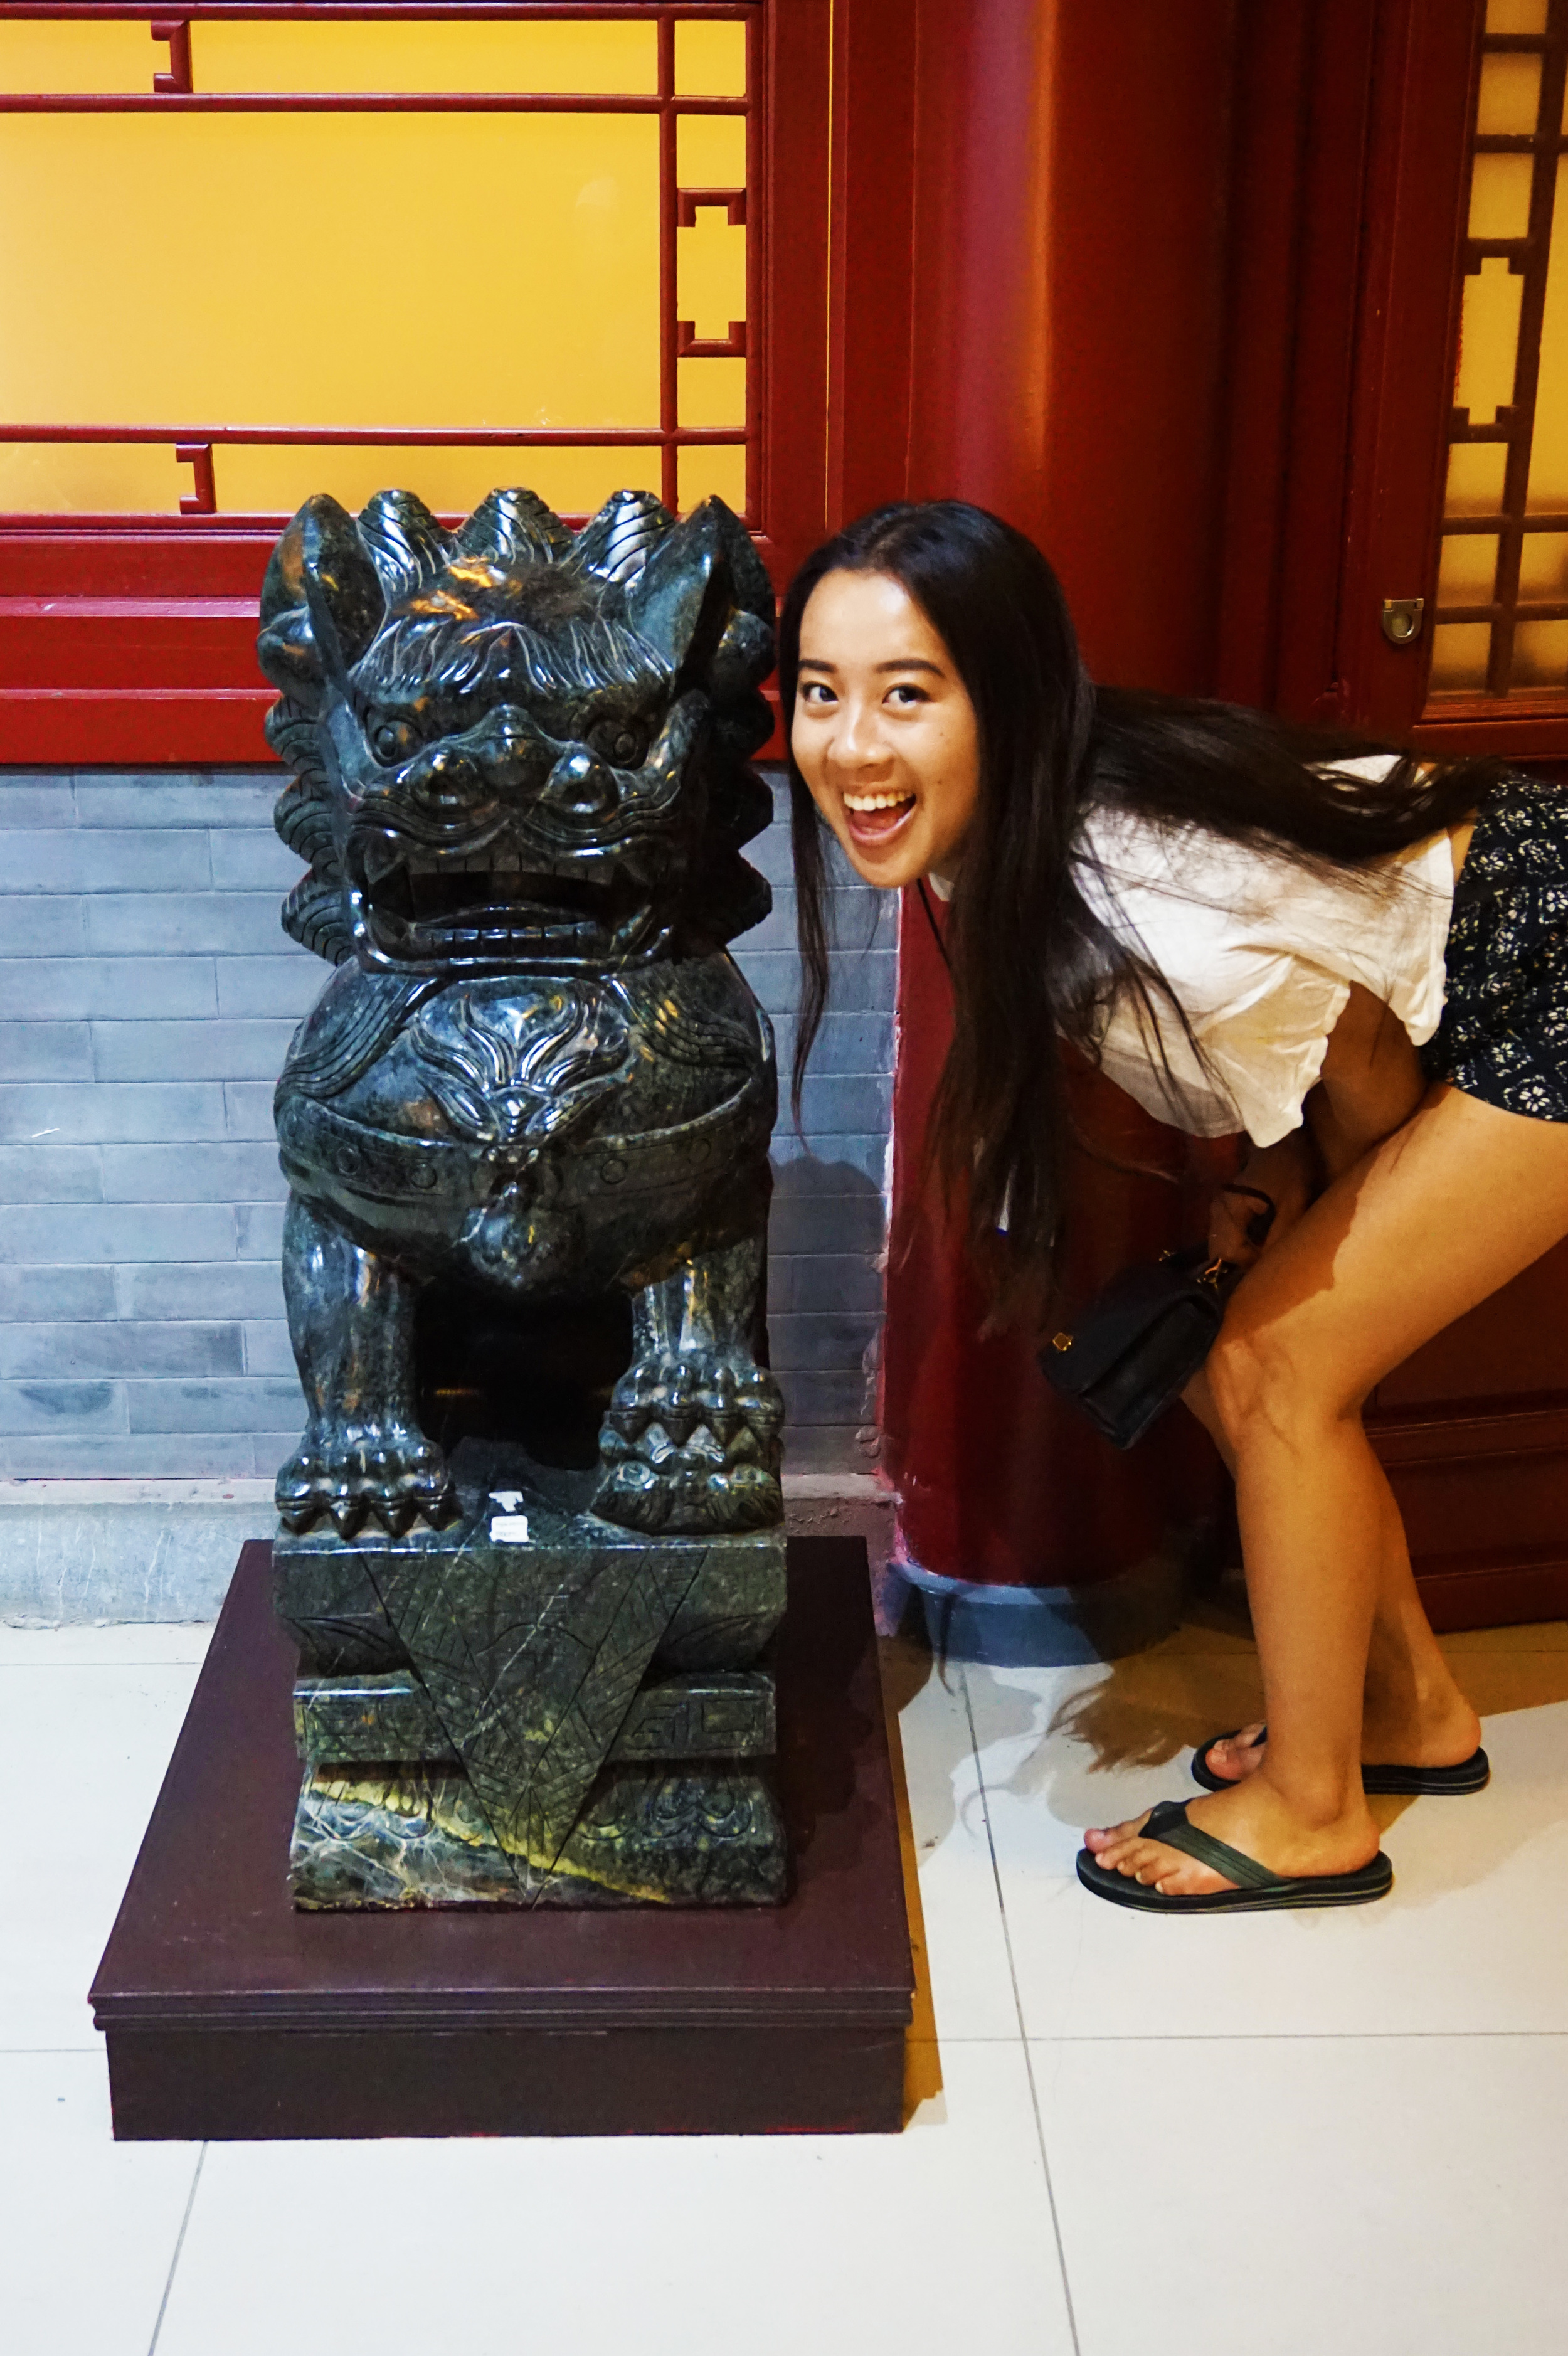 Sorority squatting with the jade lion